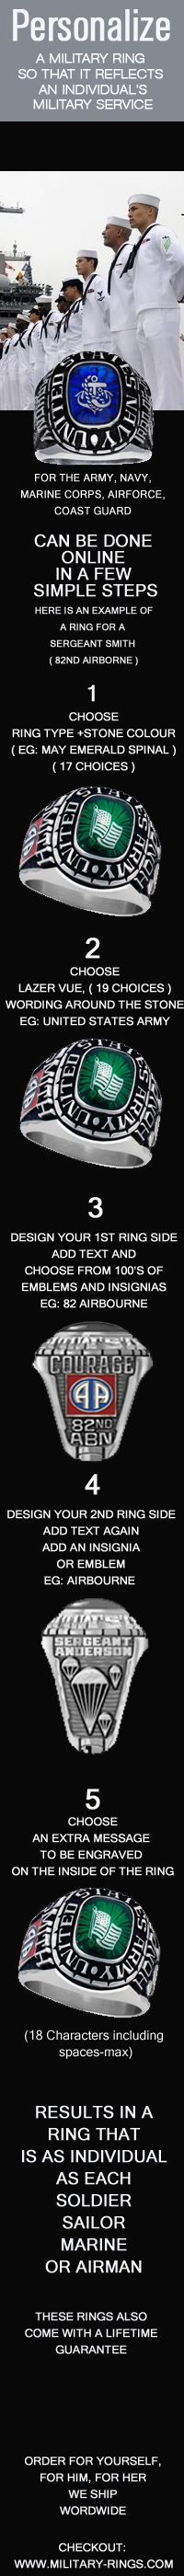 Celebrate a great career in the US Navy with Personalized custom Military rings : #USnavy #navy #USMilitary http://www.us-military-rings.com/Navy-Rings.html